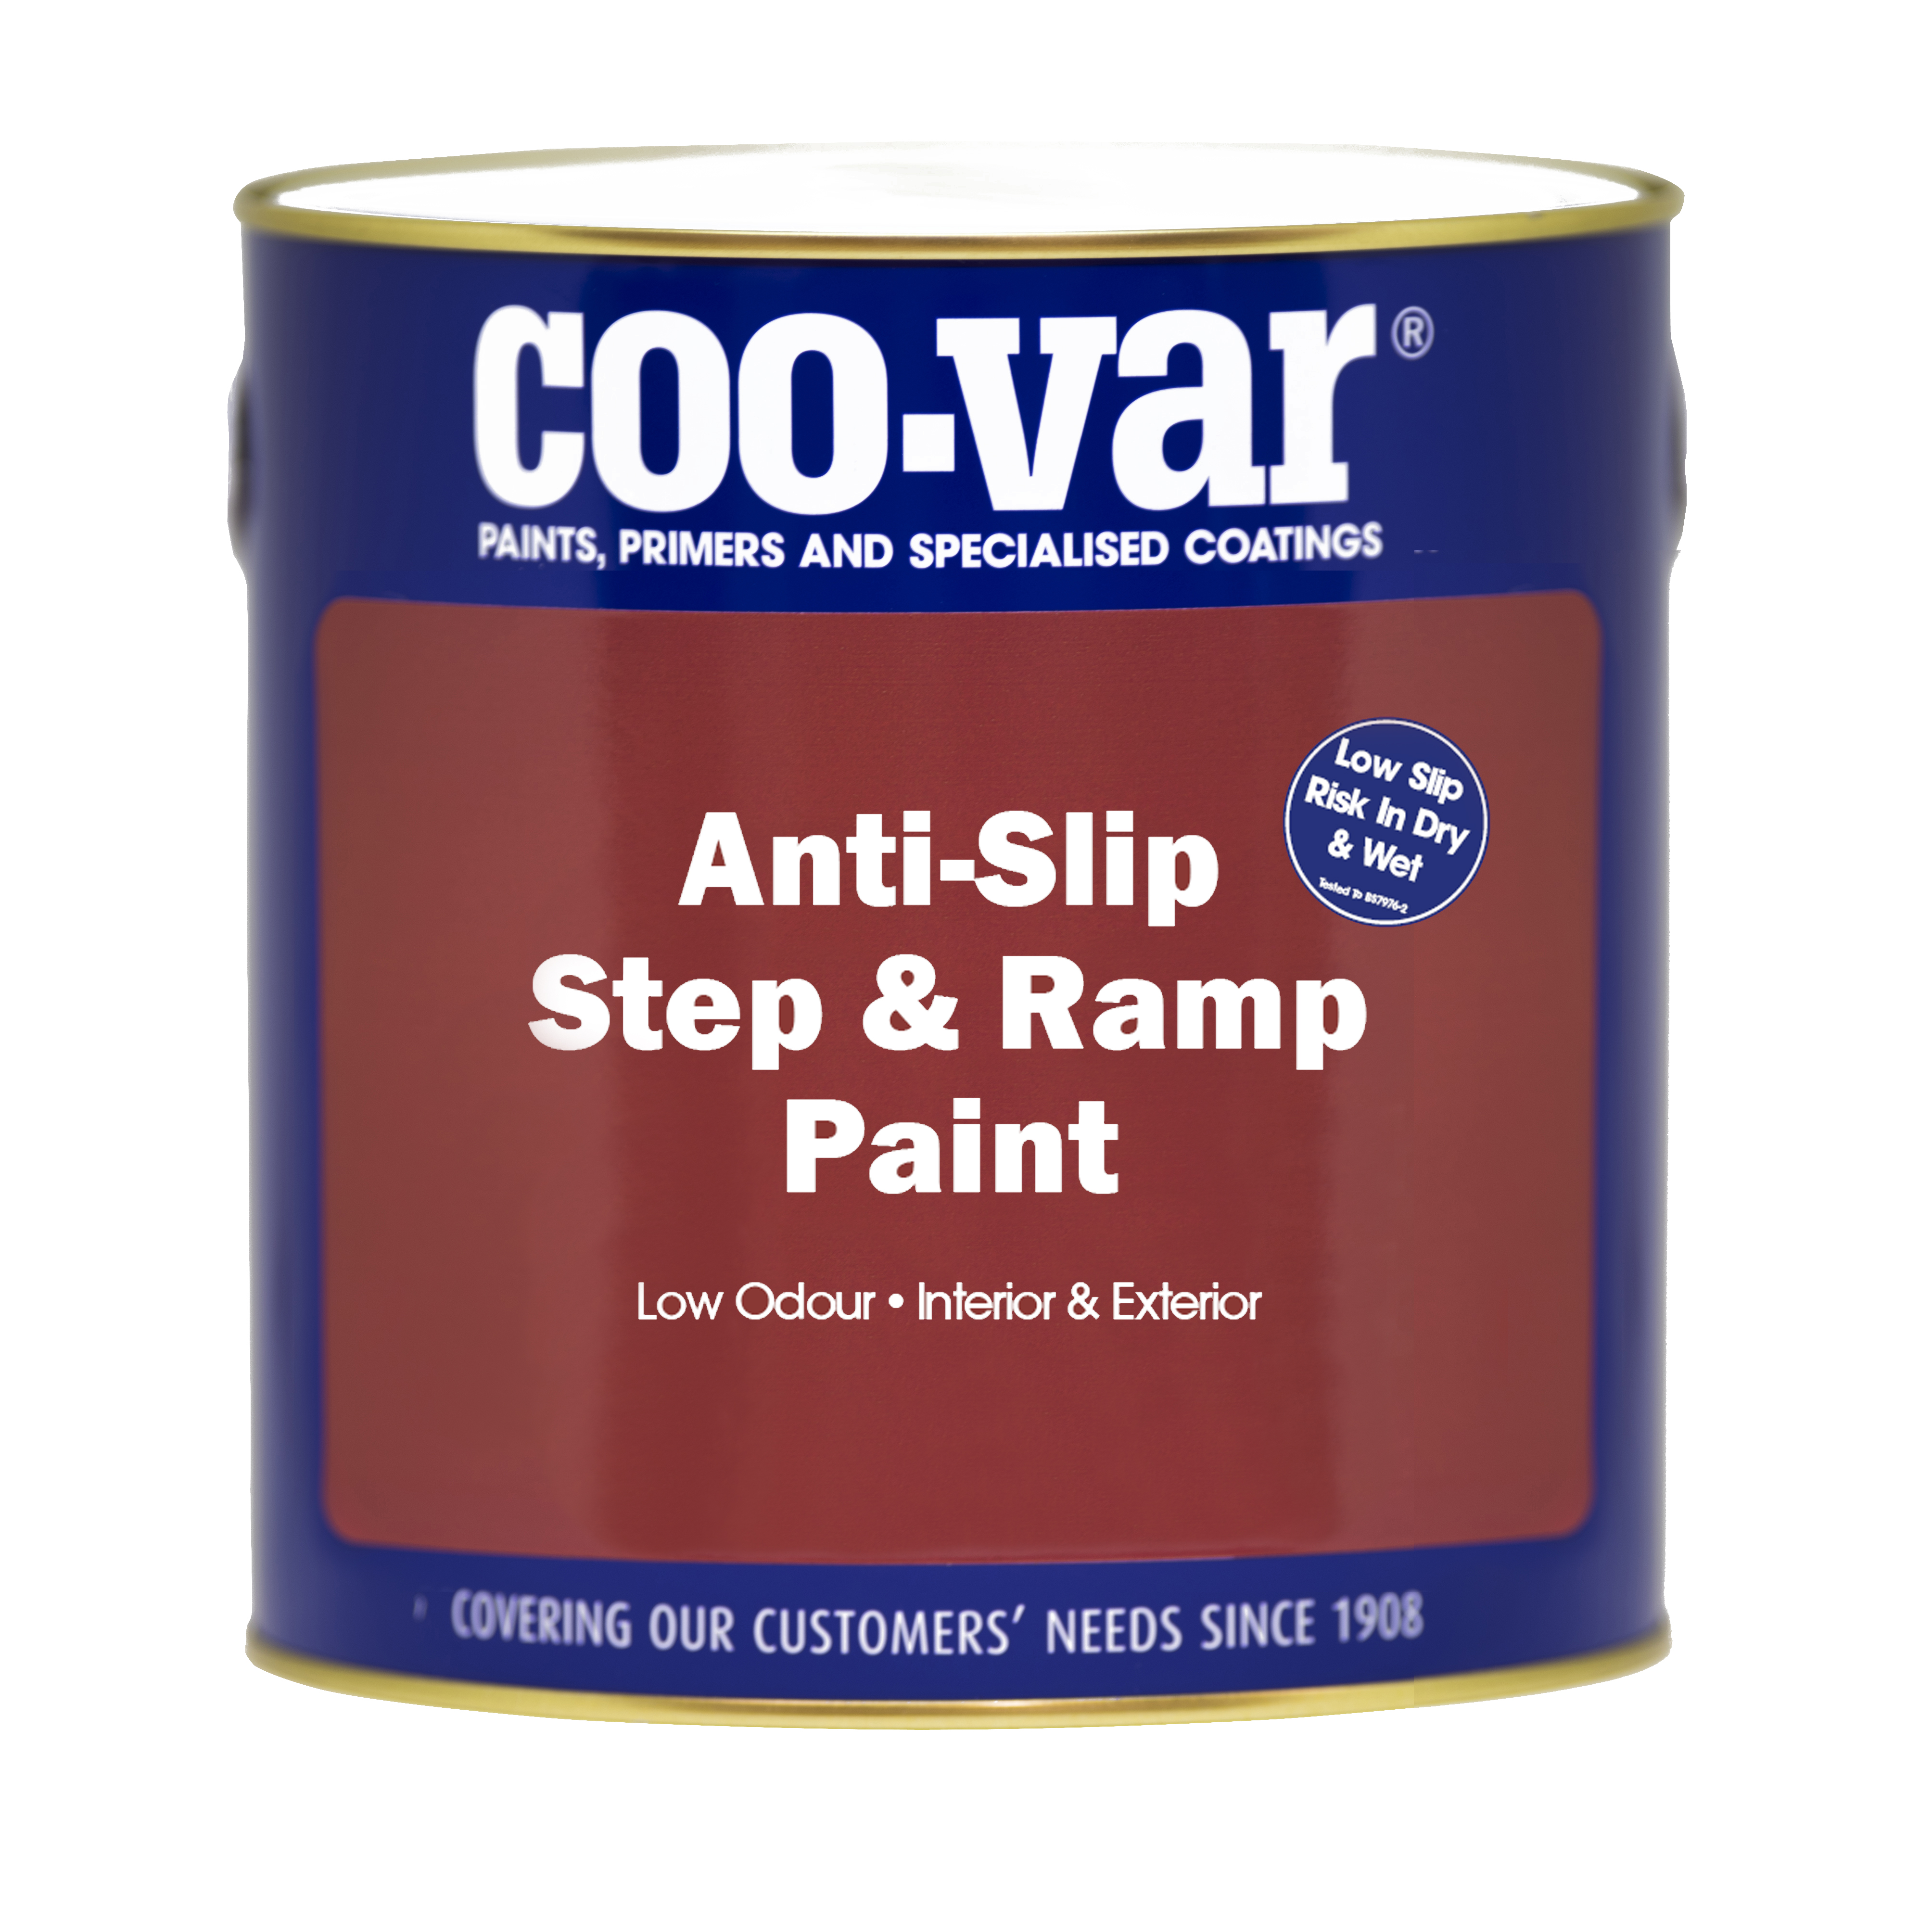 ANTI-SLIP STEP and RAMP PAINT  GREY 1L           ******   NEW PRODUCT   ******